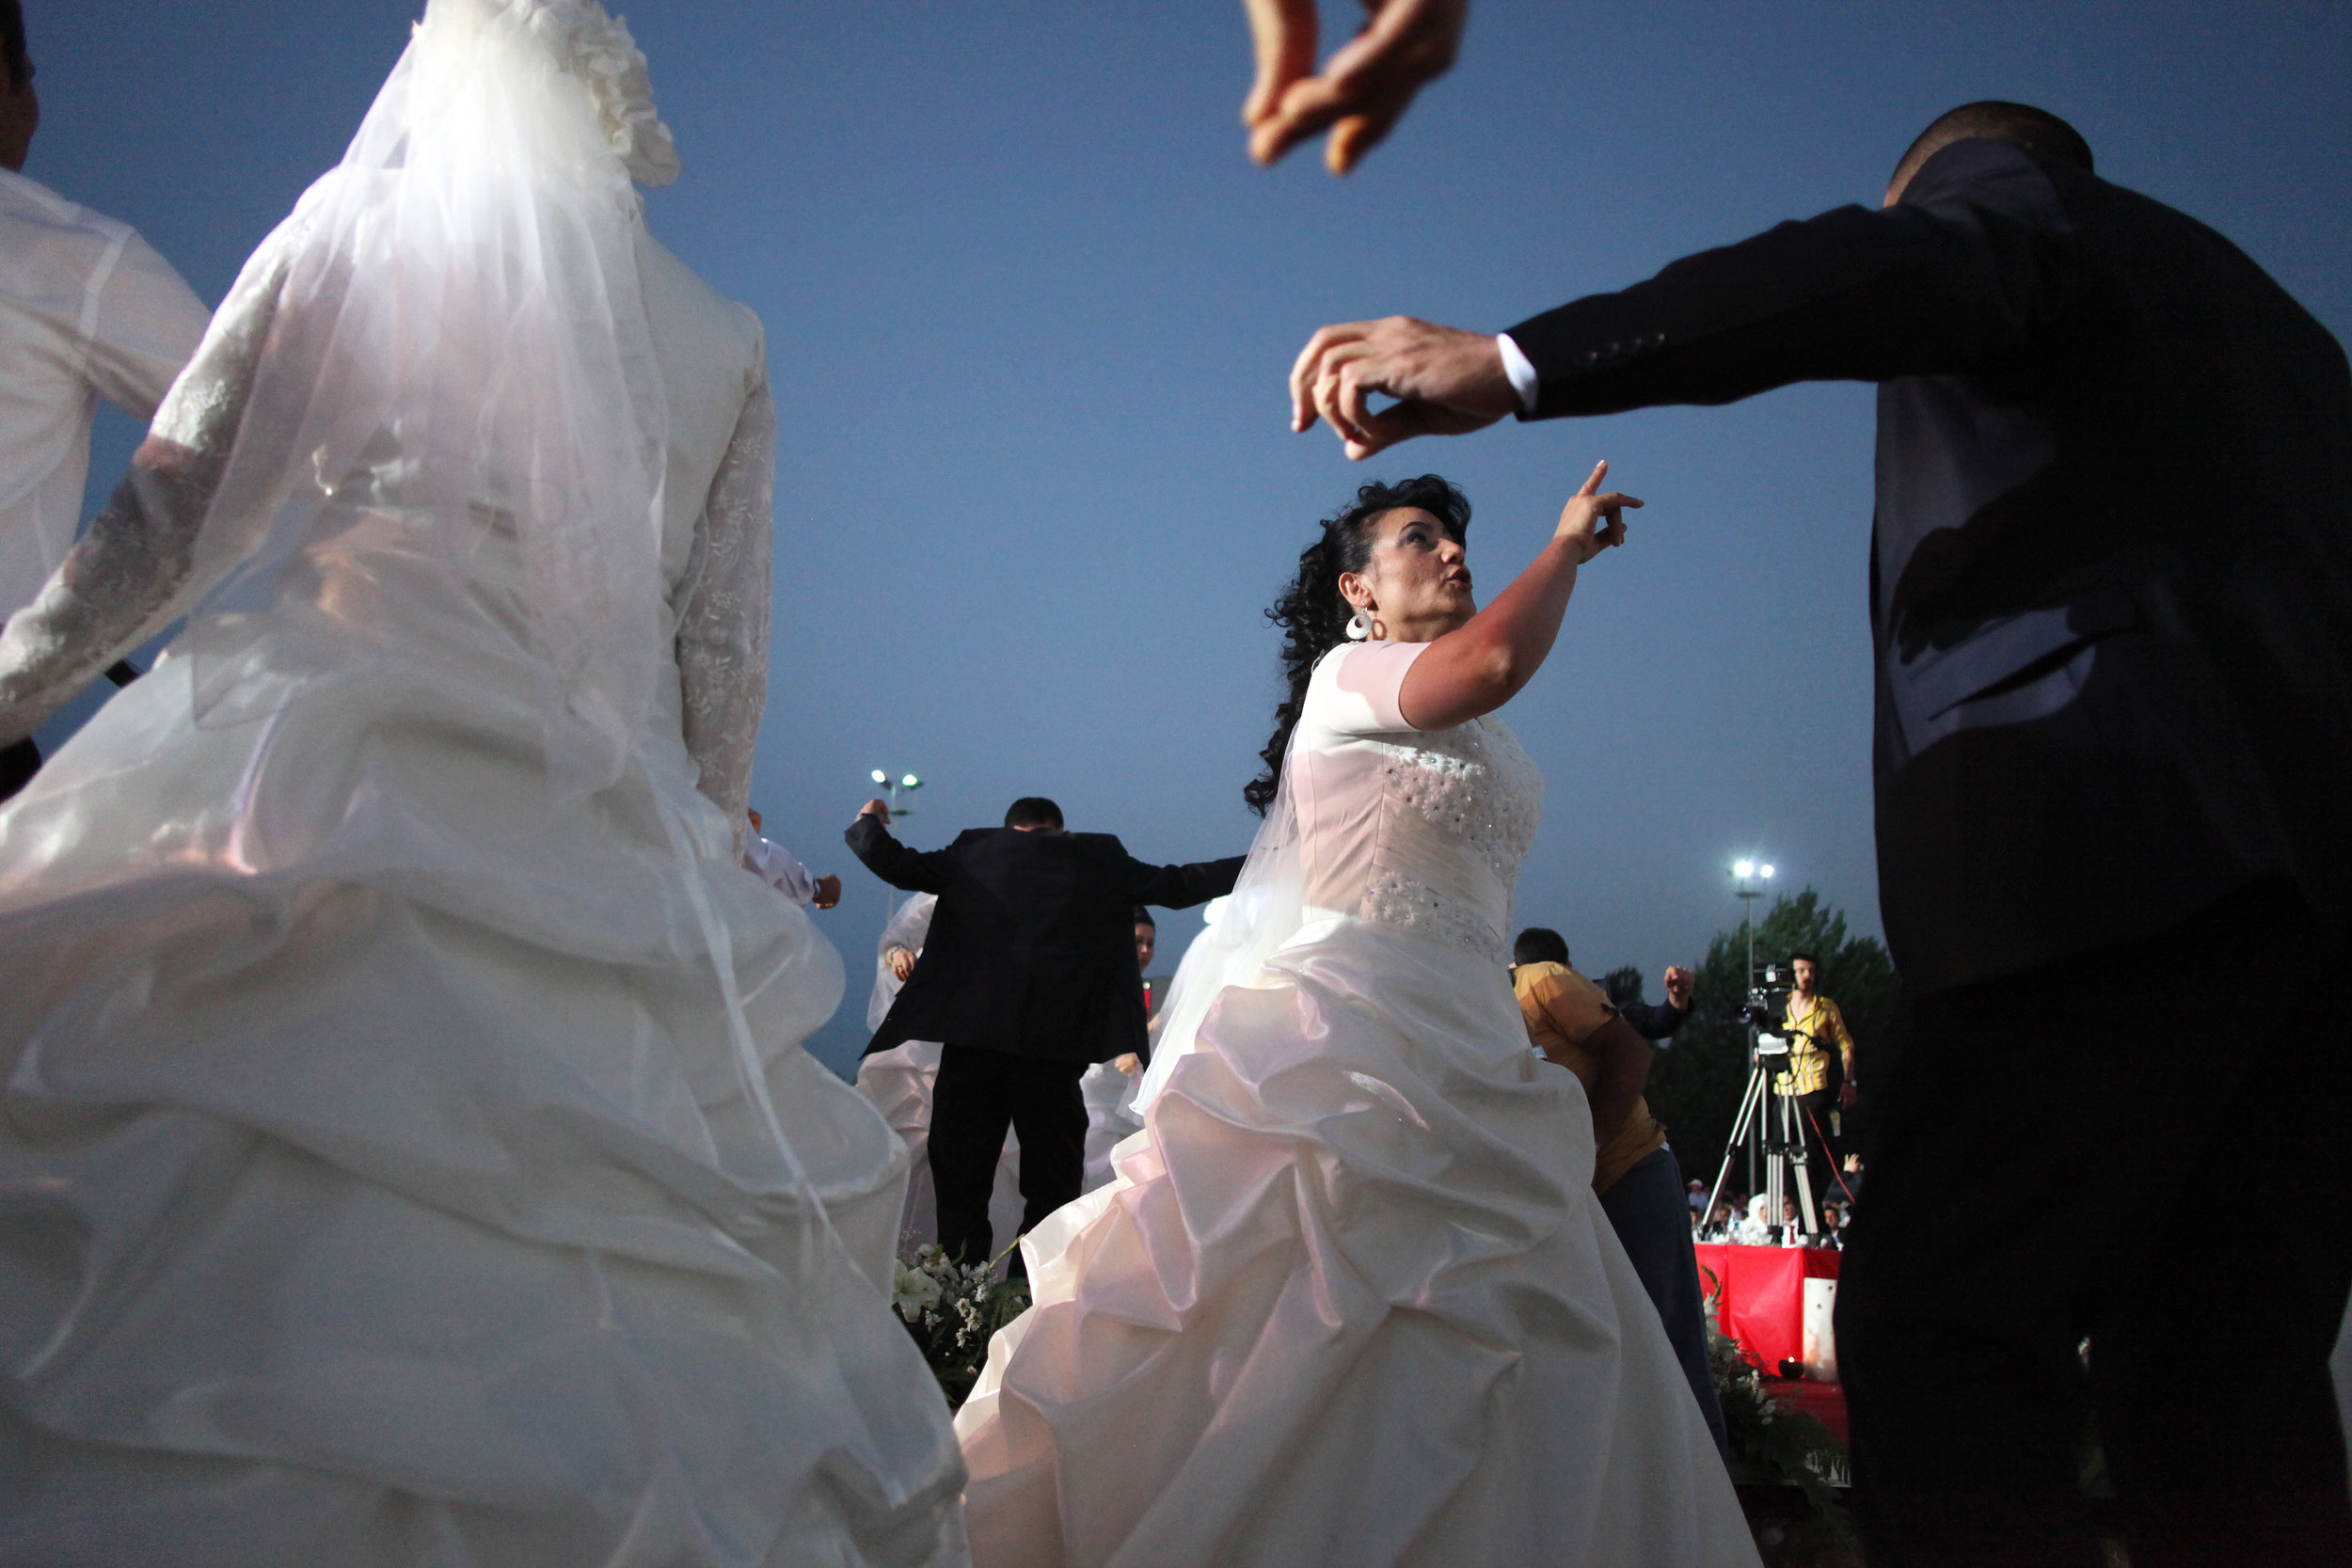 Couples dance during a wedding festival which the Ankara Buyuksehir Municipality organizes annually to help low-income families on June 29, 2013 in Ankara, Turkey. This year 213 couples participated in this community wedding.